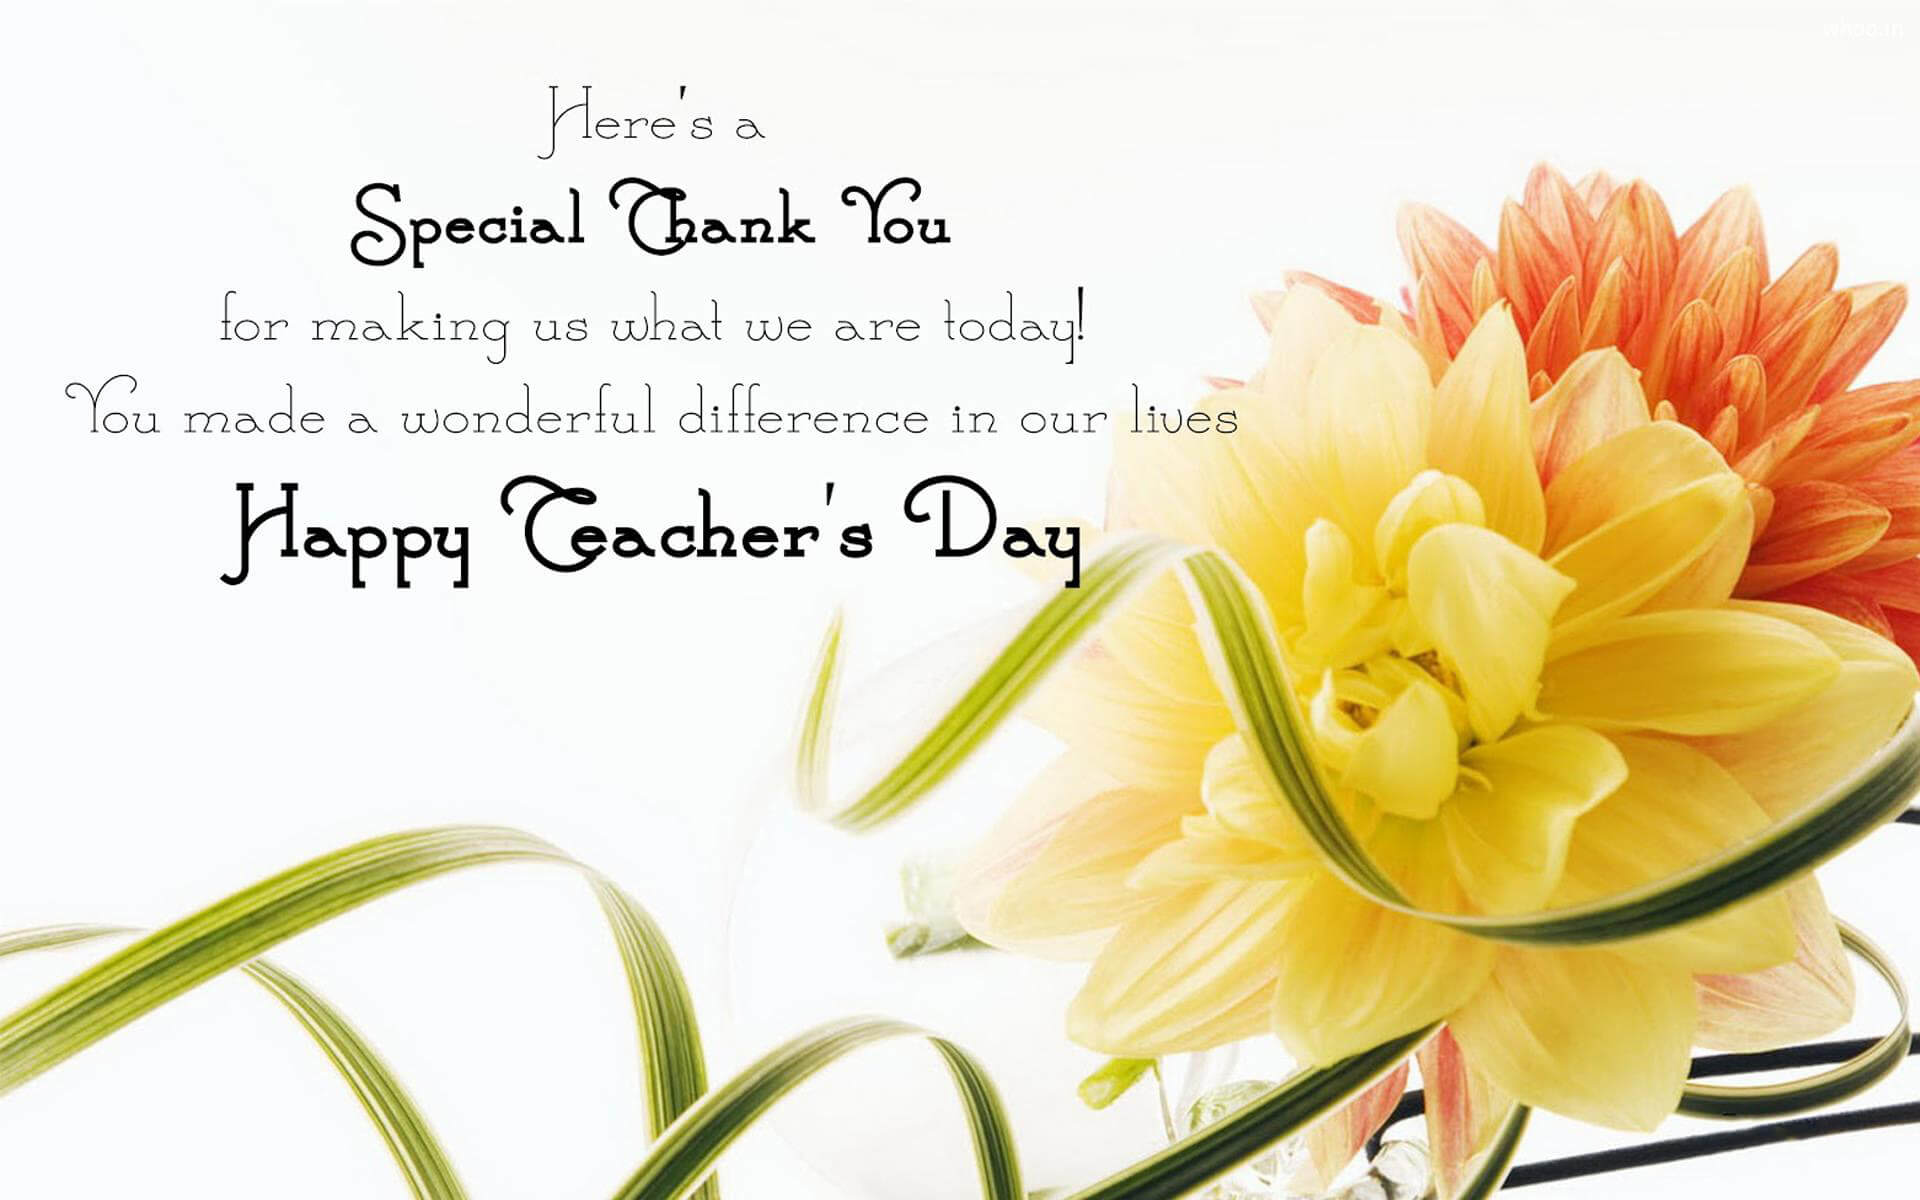 Happy teachers day quotes wishes flowers hd wallpaper altavistaventures Choice Image